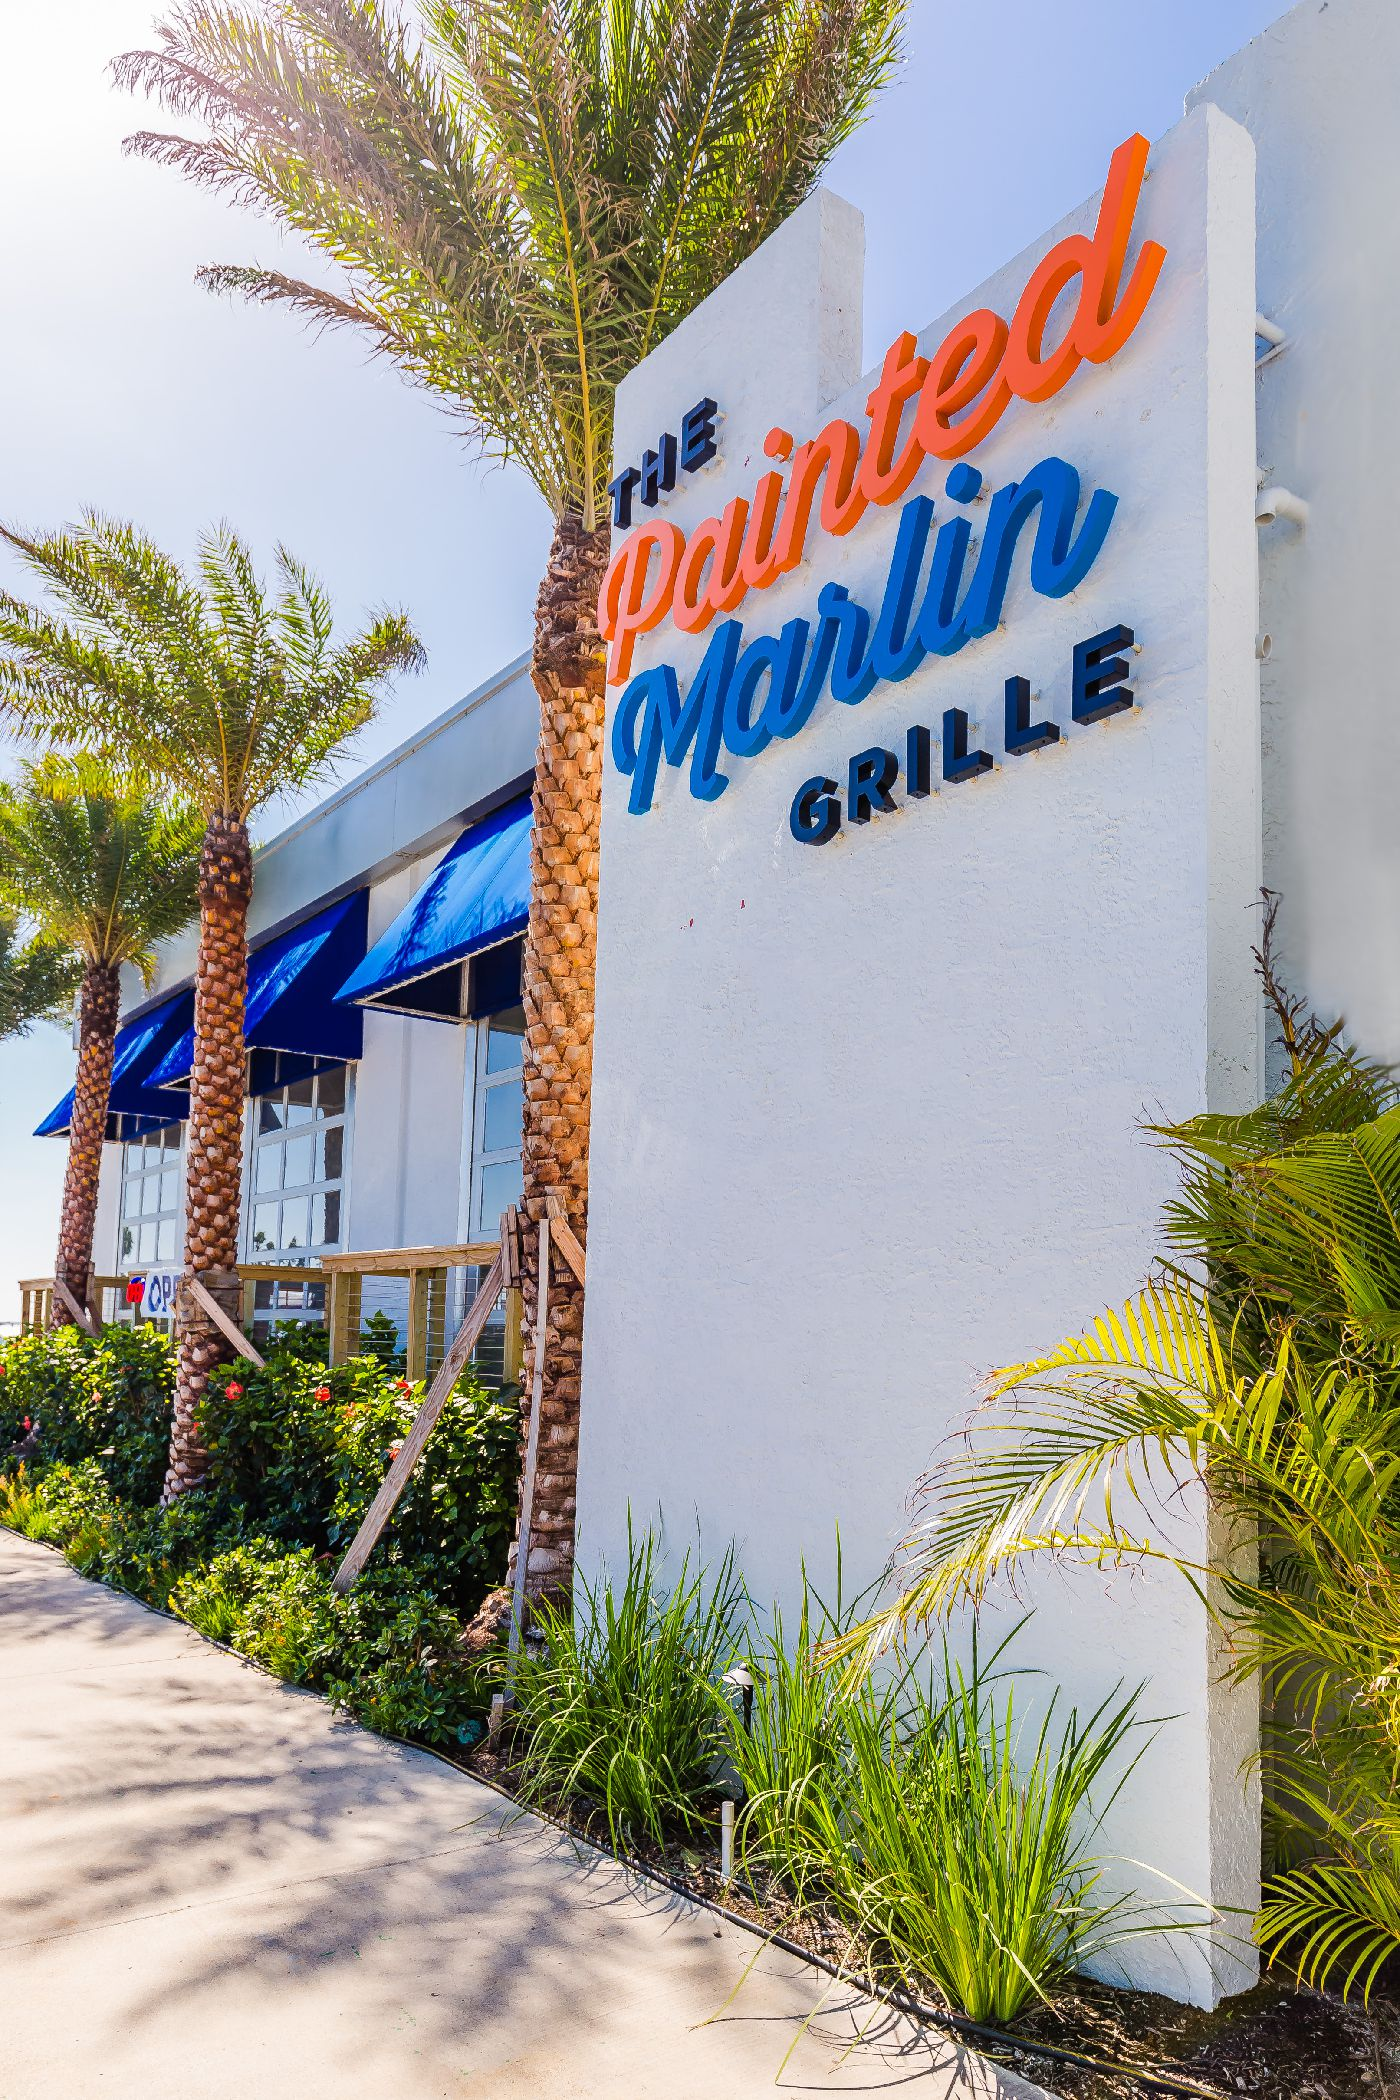 The Painted Marlin Grille